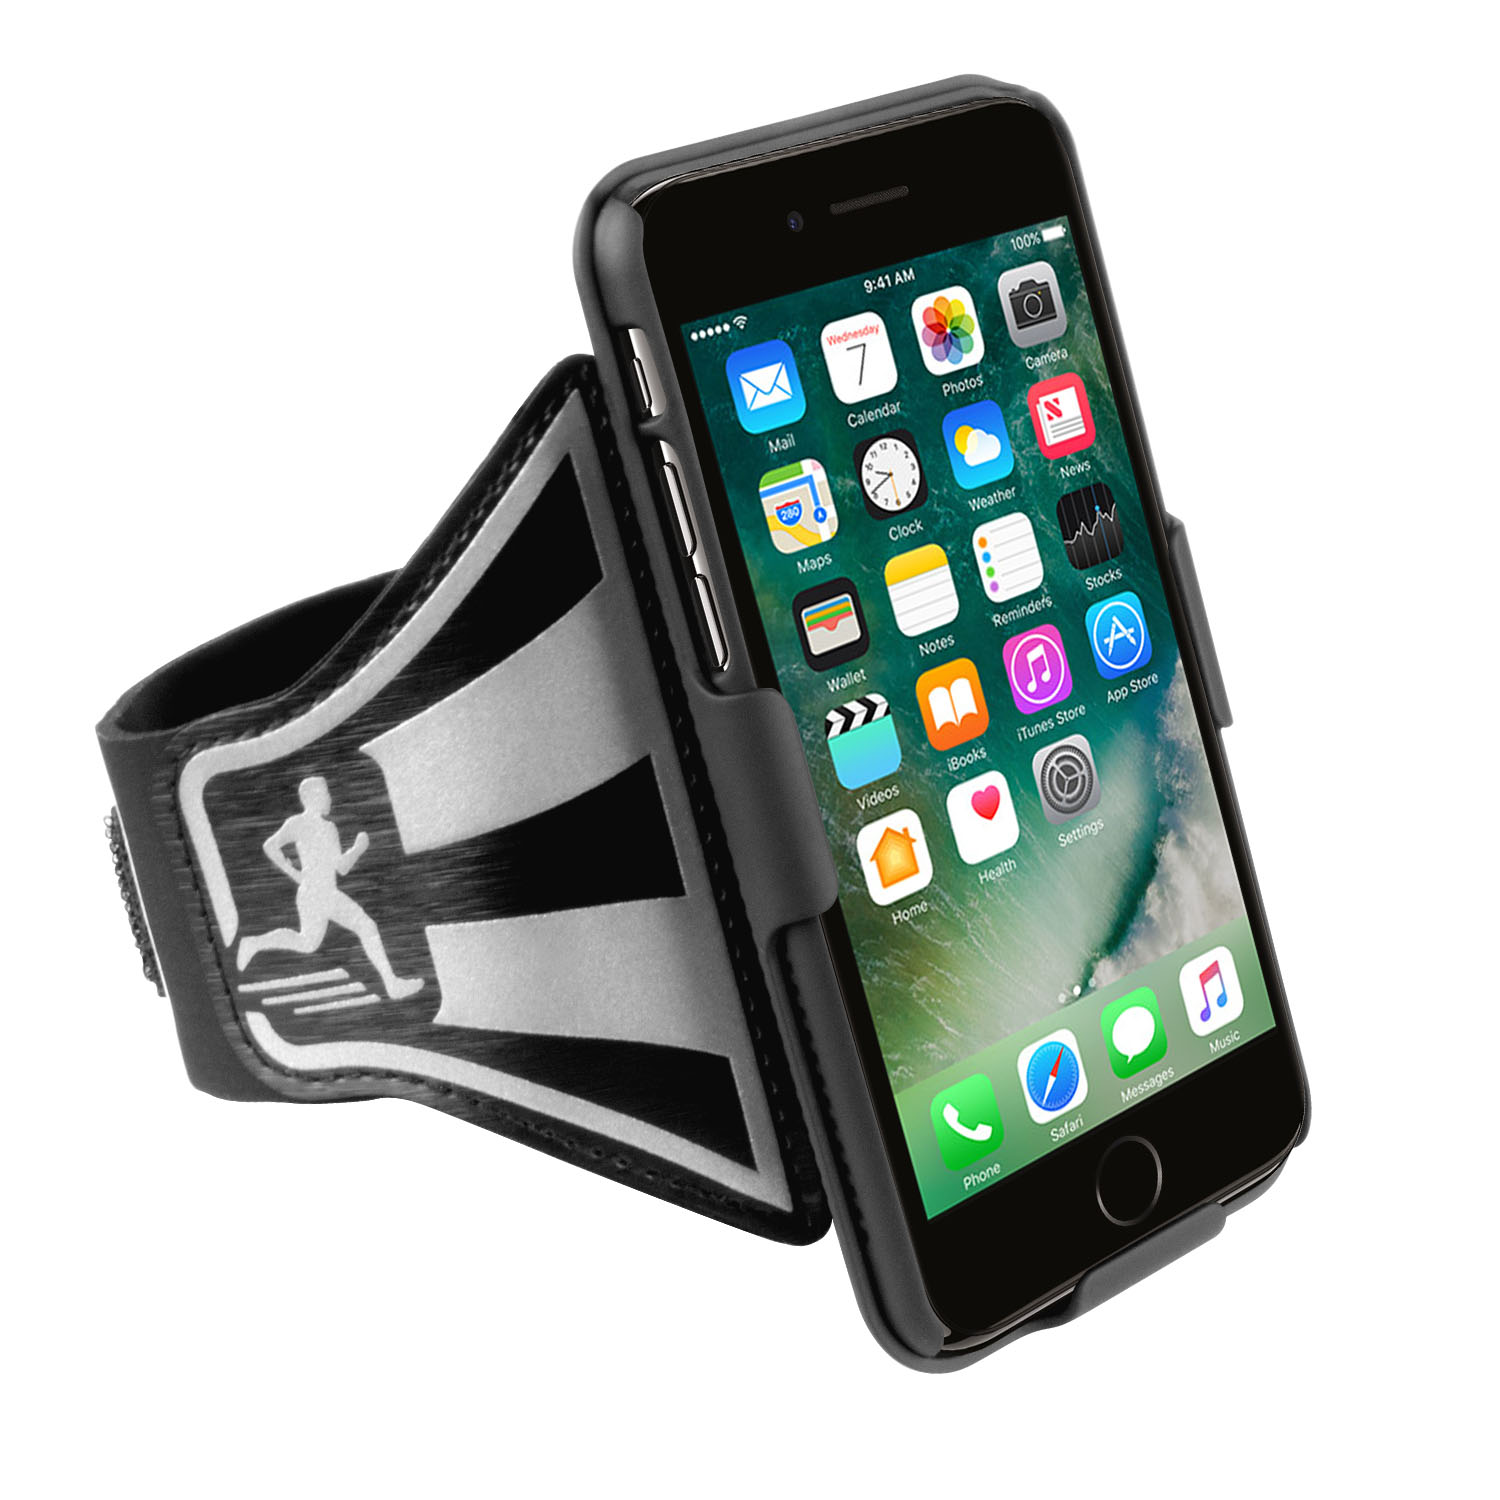 Running Armband for iPhone 7 Open Face Arm Band Ideal for Fitness Apps. Workout Band with Rotative Phone Holster. Sport Case for Running Jogging Exercise Fitness. Case Combo